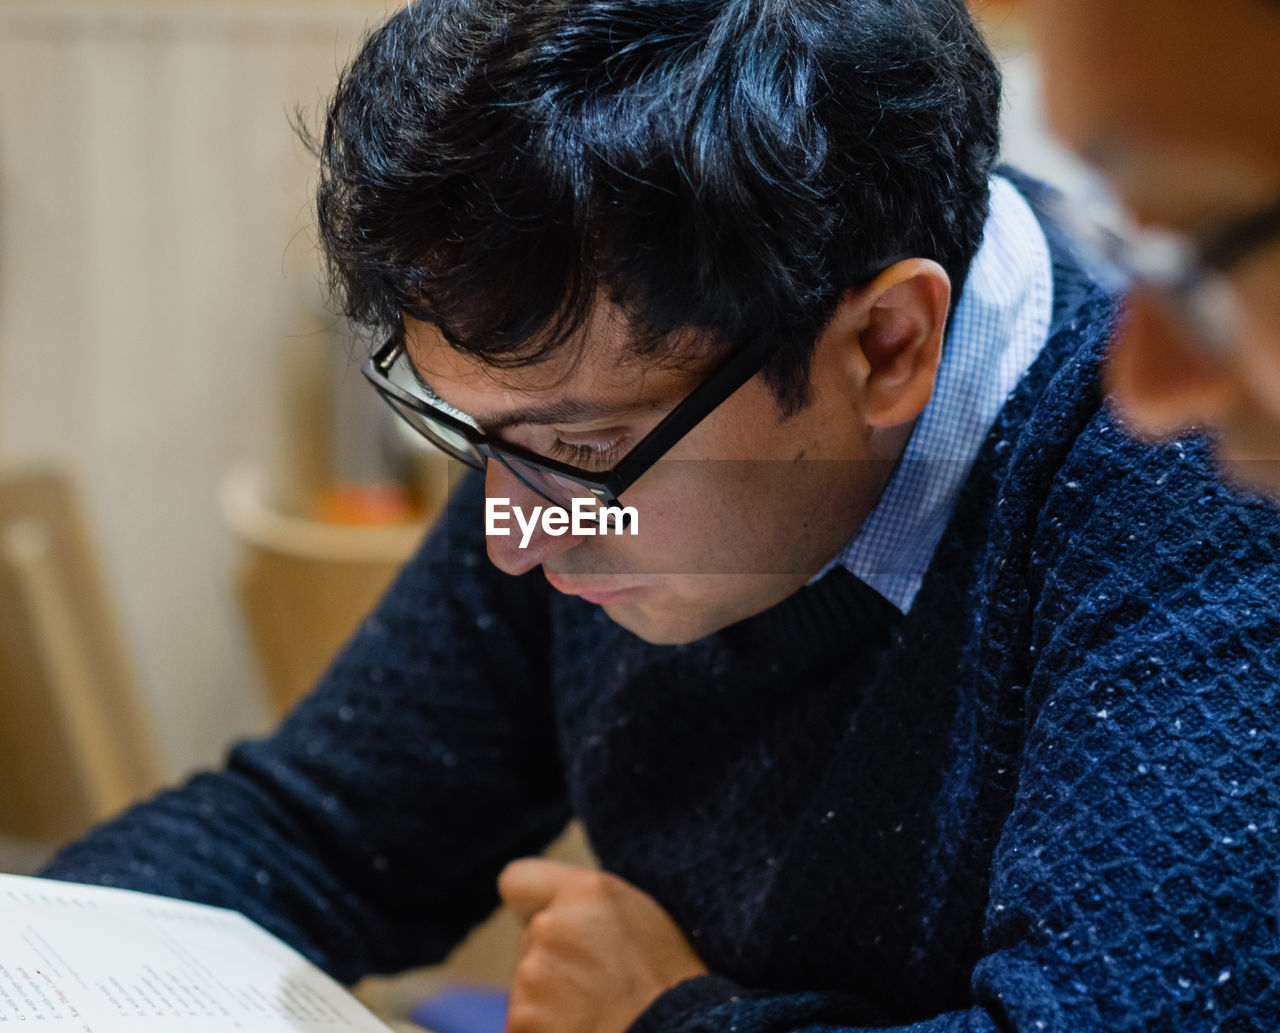 Eyeglasses  Real People Glasses One Person Focus On Foreground Sitting Indoors  Looking Down Men Looking Adult Lifestyles Concentration Casual Clothing Black Hair Close-up Young Adult Book Reading Menu Restaurant Thoughtful Choosing Decisions Head And Shoulders Asian Ethnicity Reading Glasses